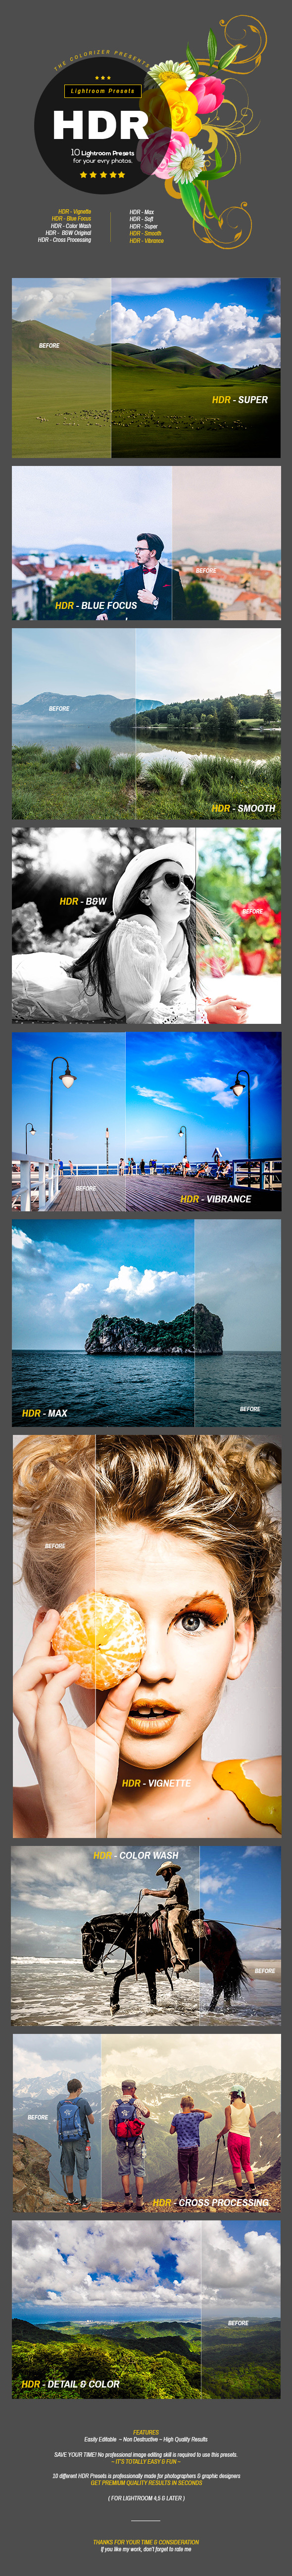 GraphicRiver HDR Lightroom Presets 11913418